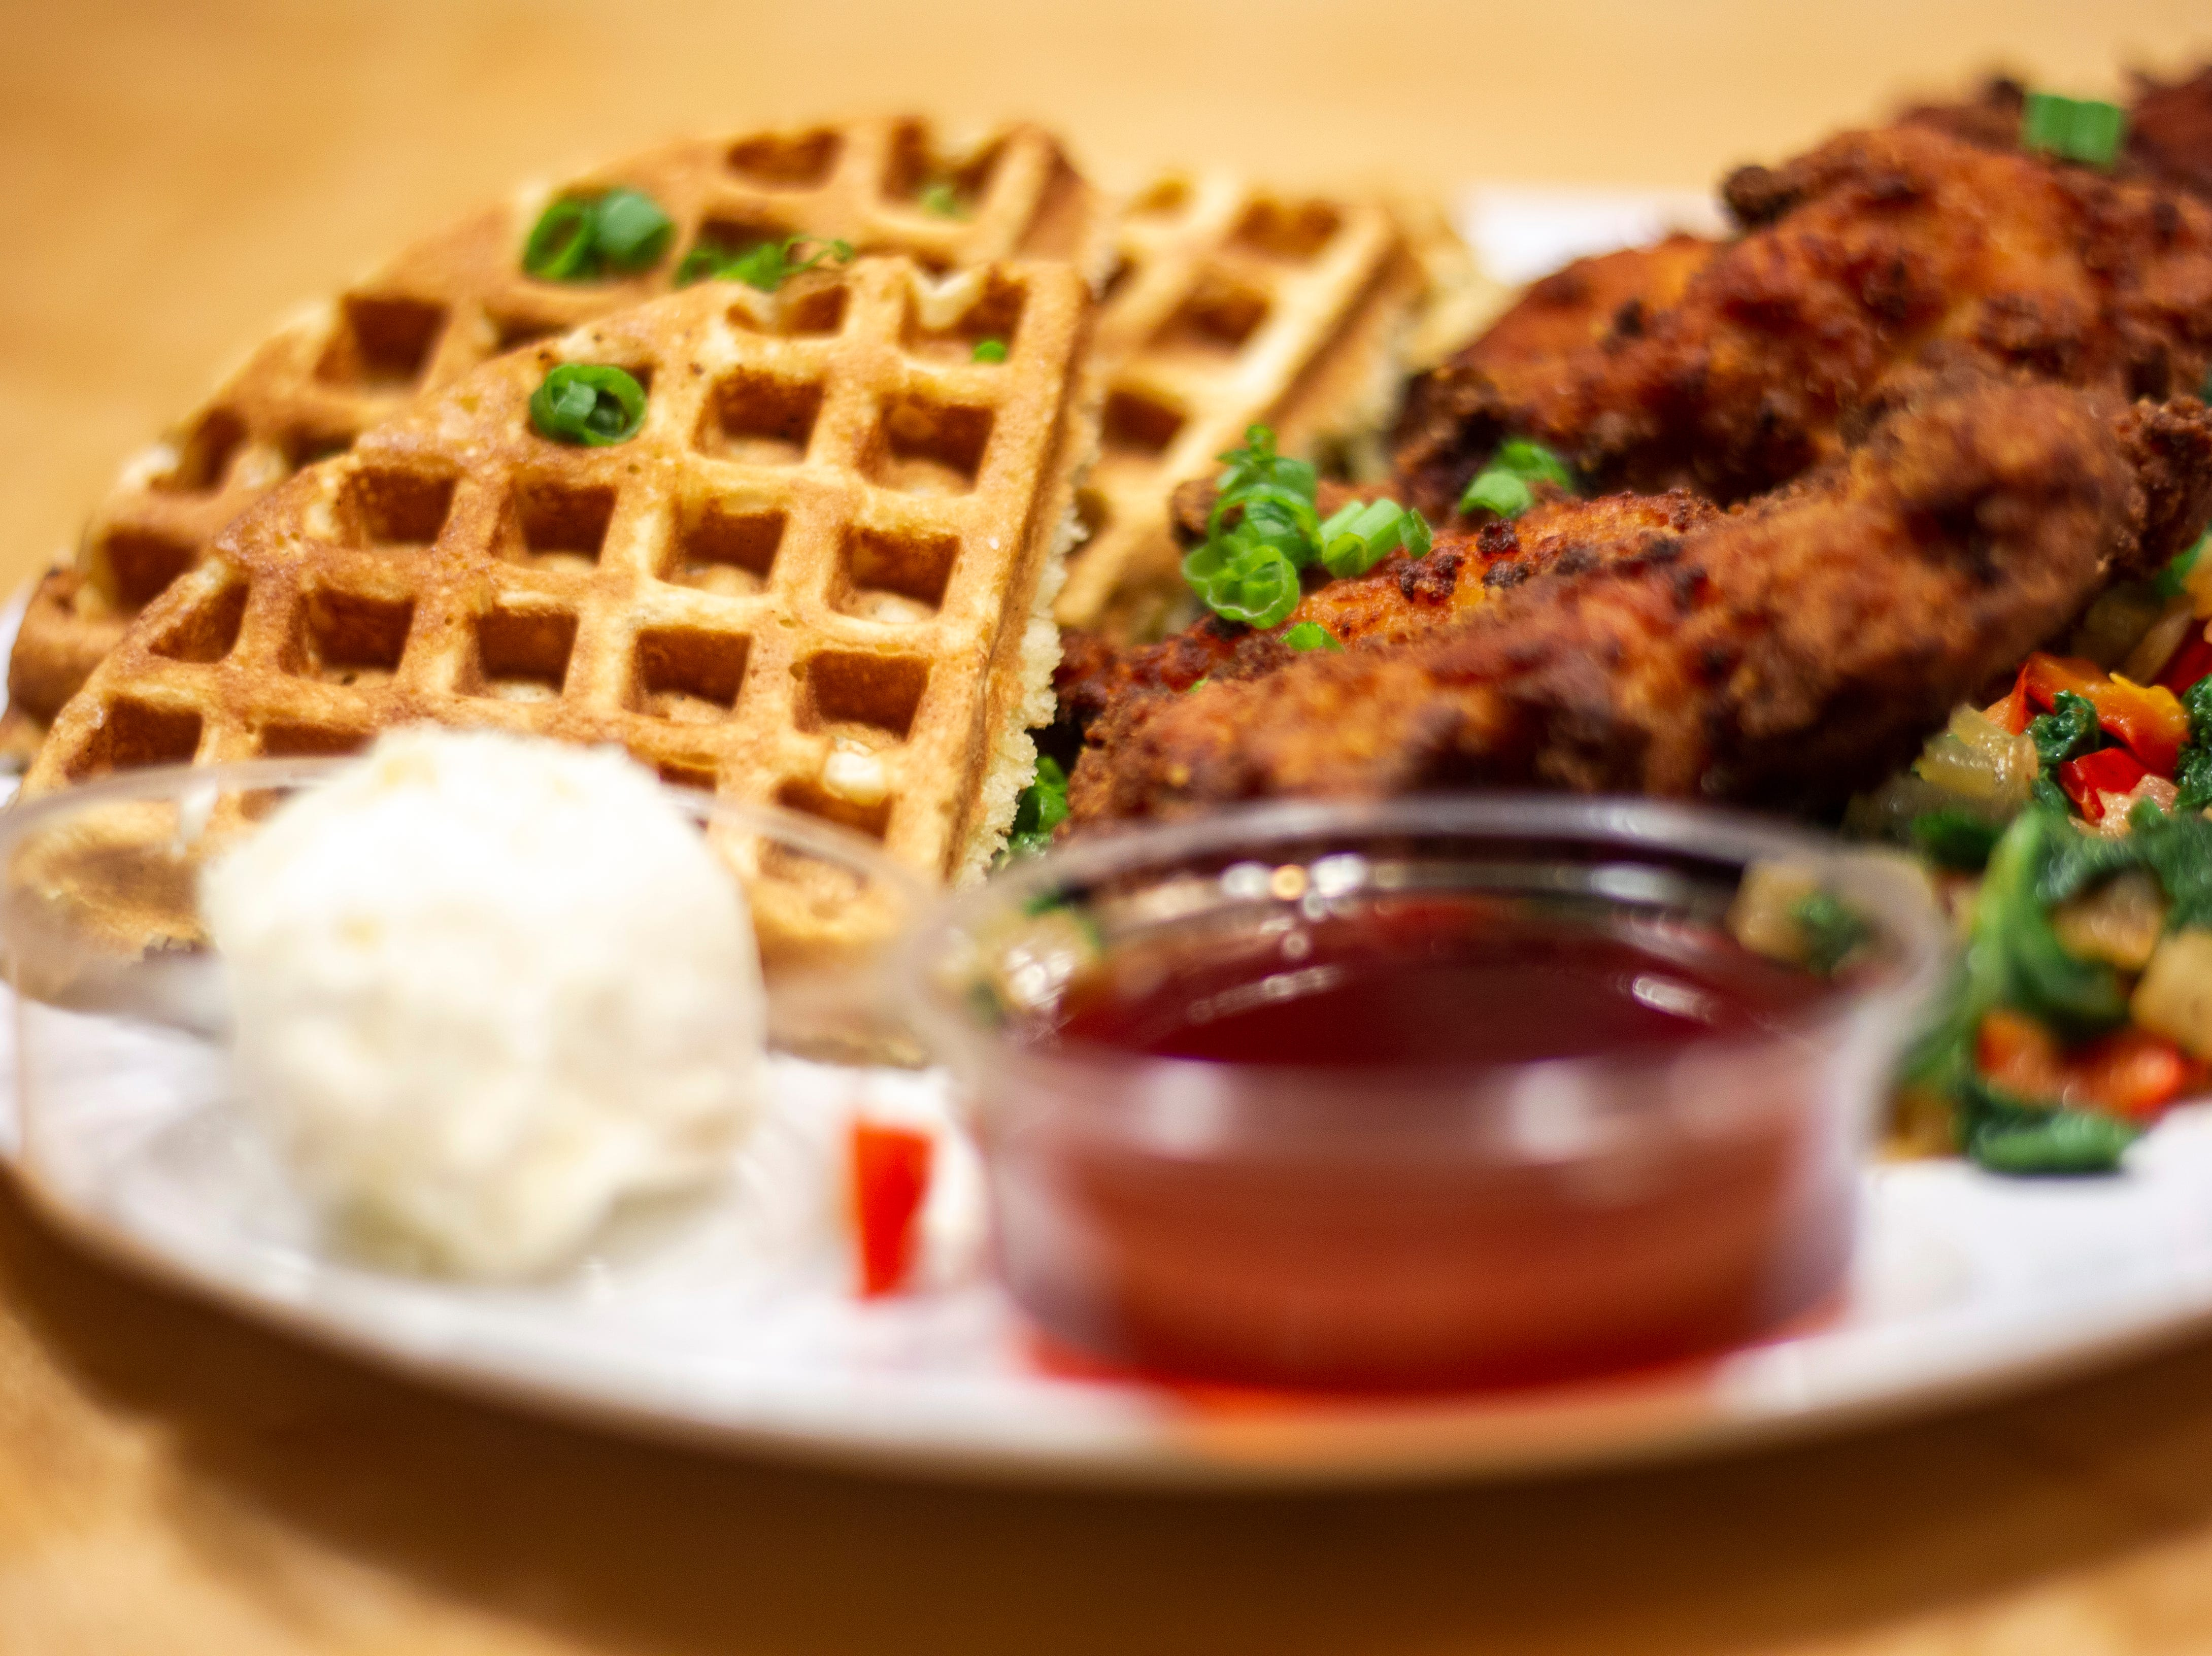 A plate of chicken and waffles is seen on Thursday, Dec. 13, 2018, at Melk in Iowa City. Melk is a new diner located on Washington Street that serves breakfast all day along with cereal shakes, smashburgers and more.